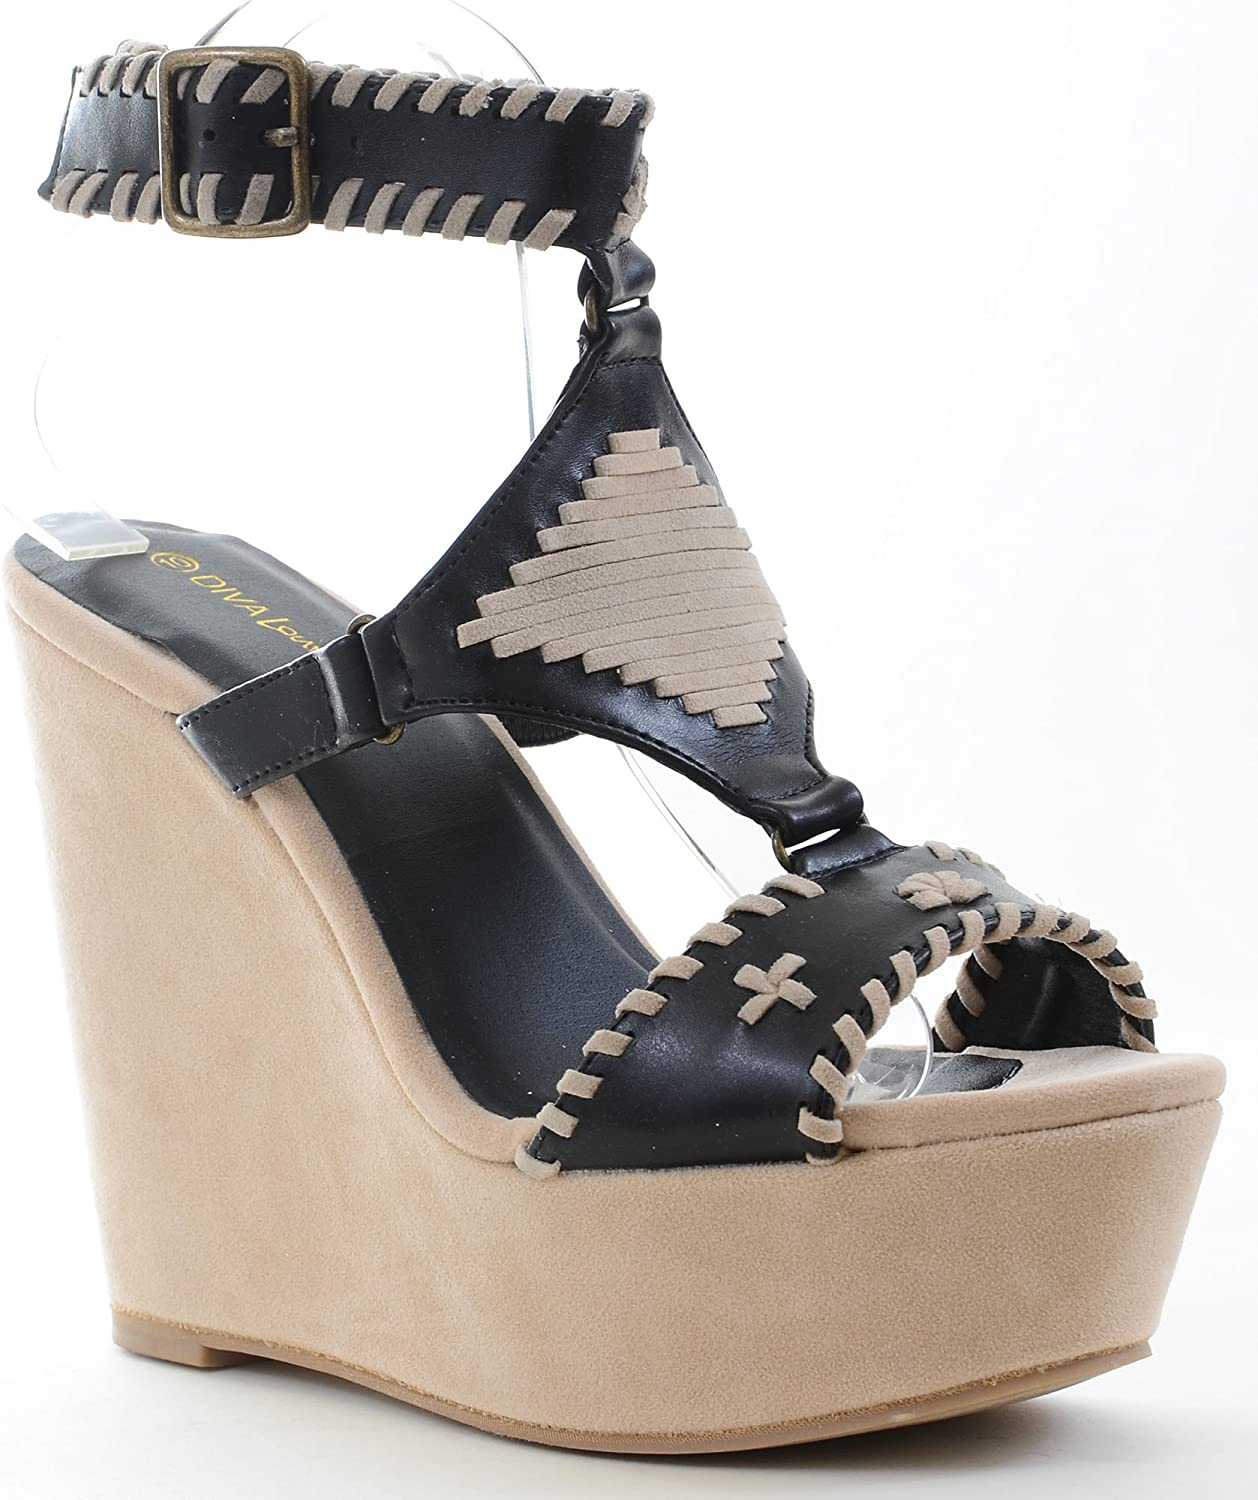 Fourever Funky Stitched Woven Anklet Open Toe Wedge Sandal Black